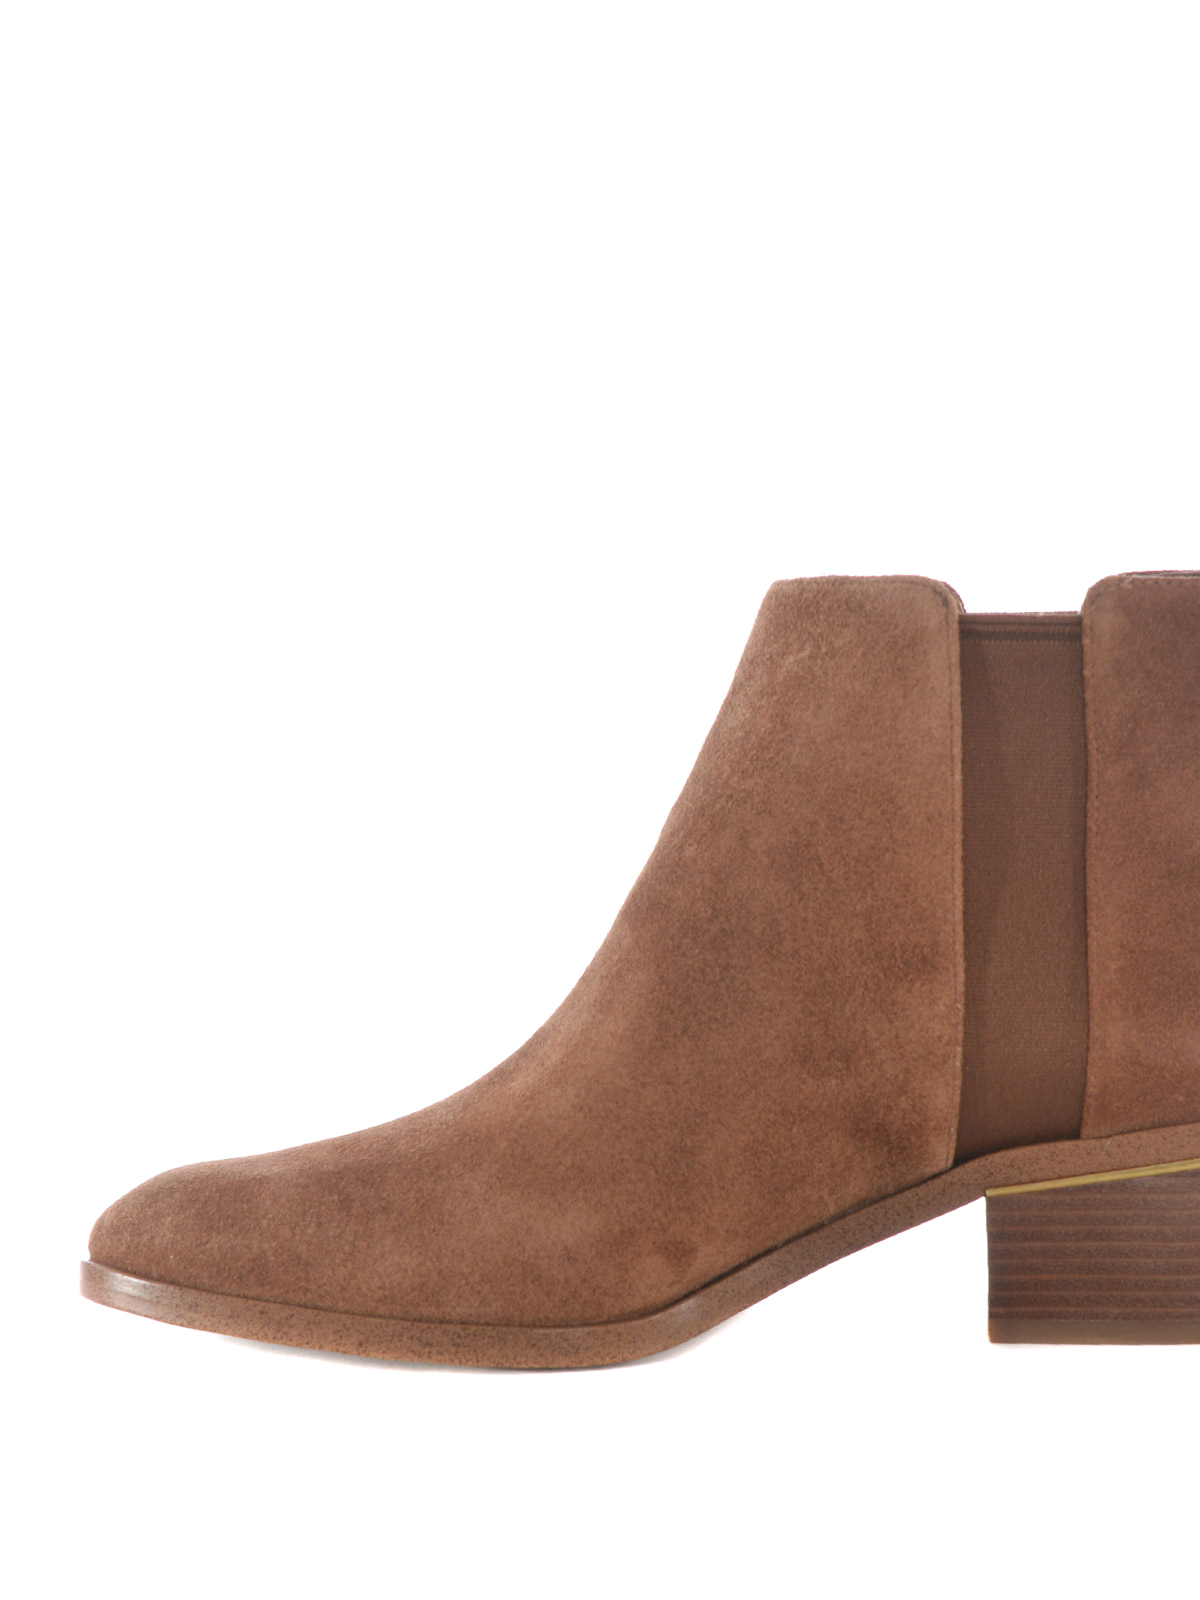 Crosby brushed suede Chelsea boots